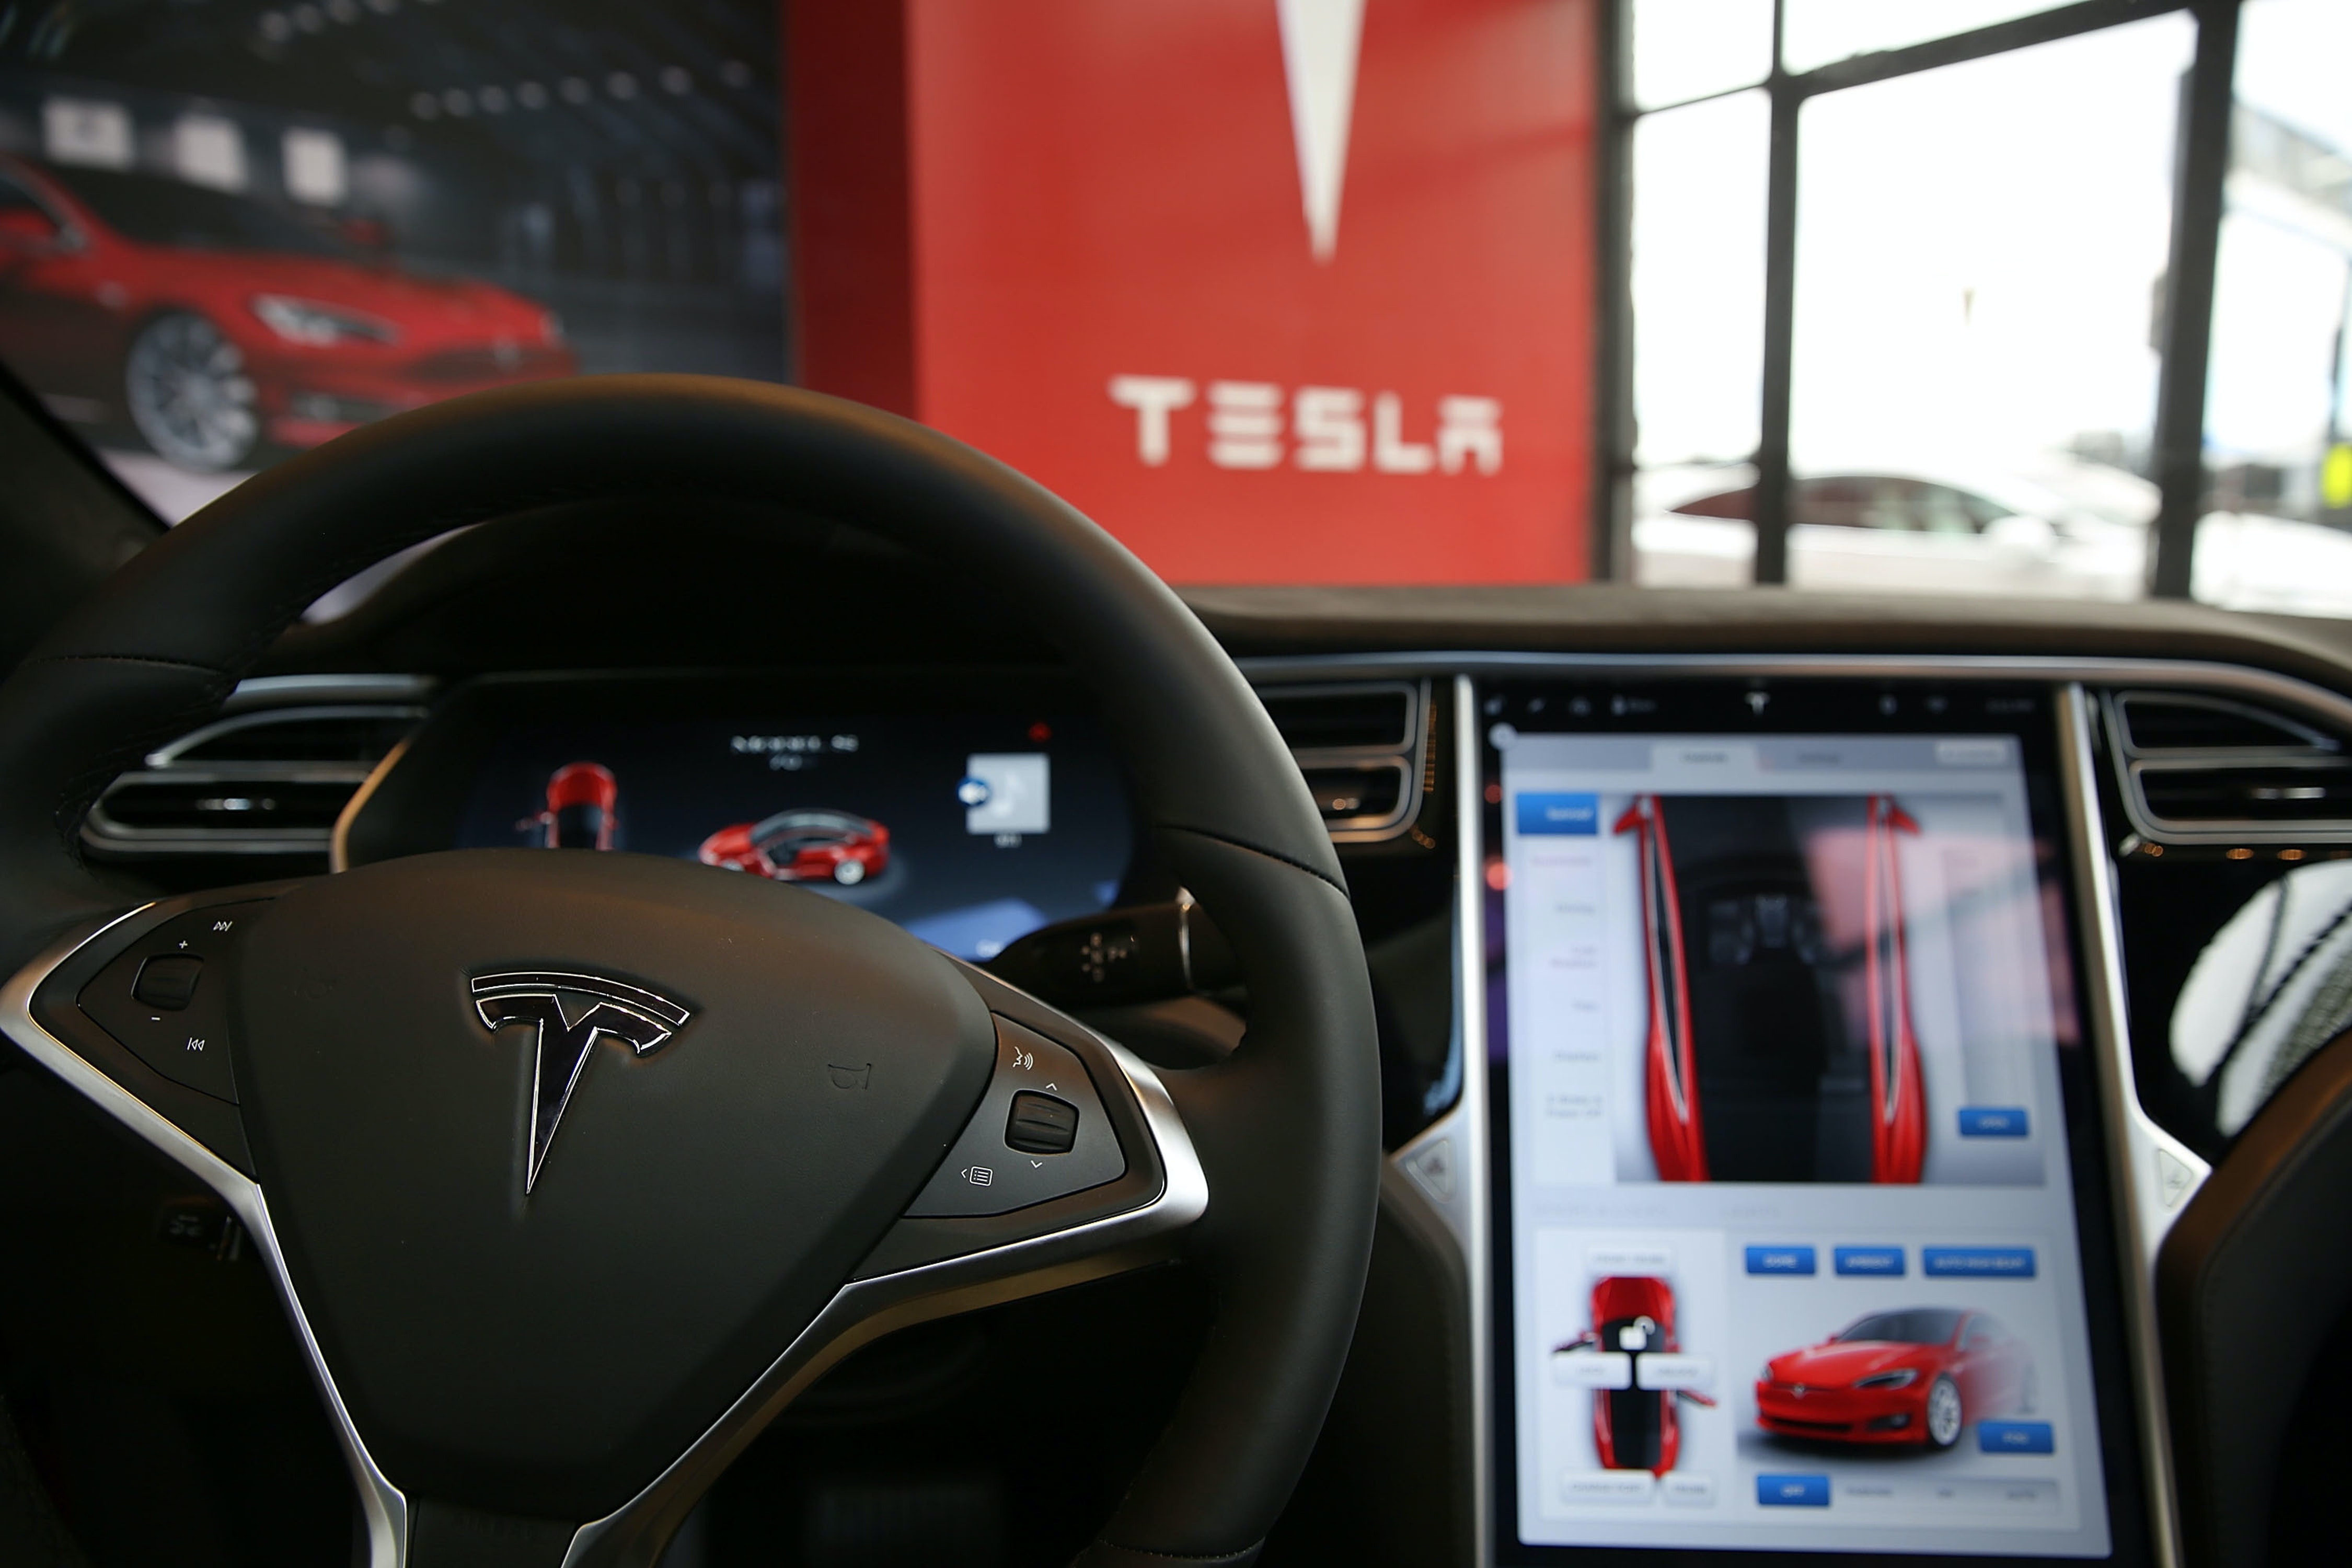 The inside of a Tesla vehicle and its internal heads up display.